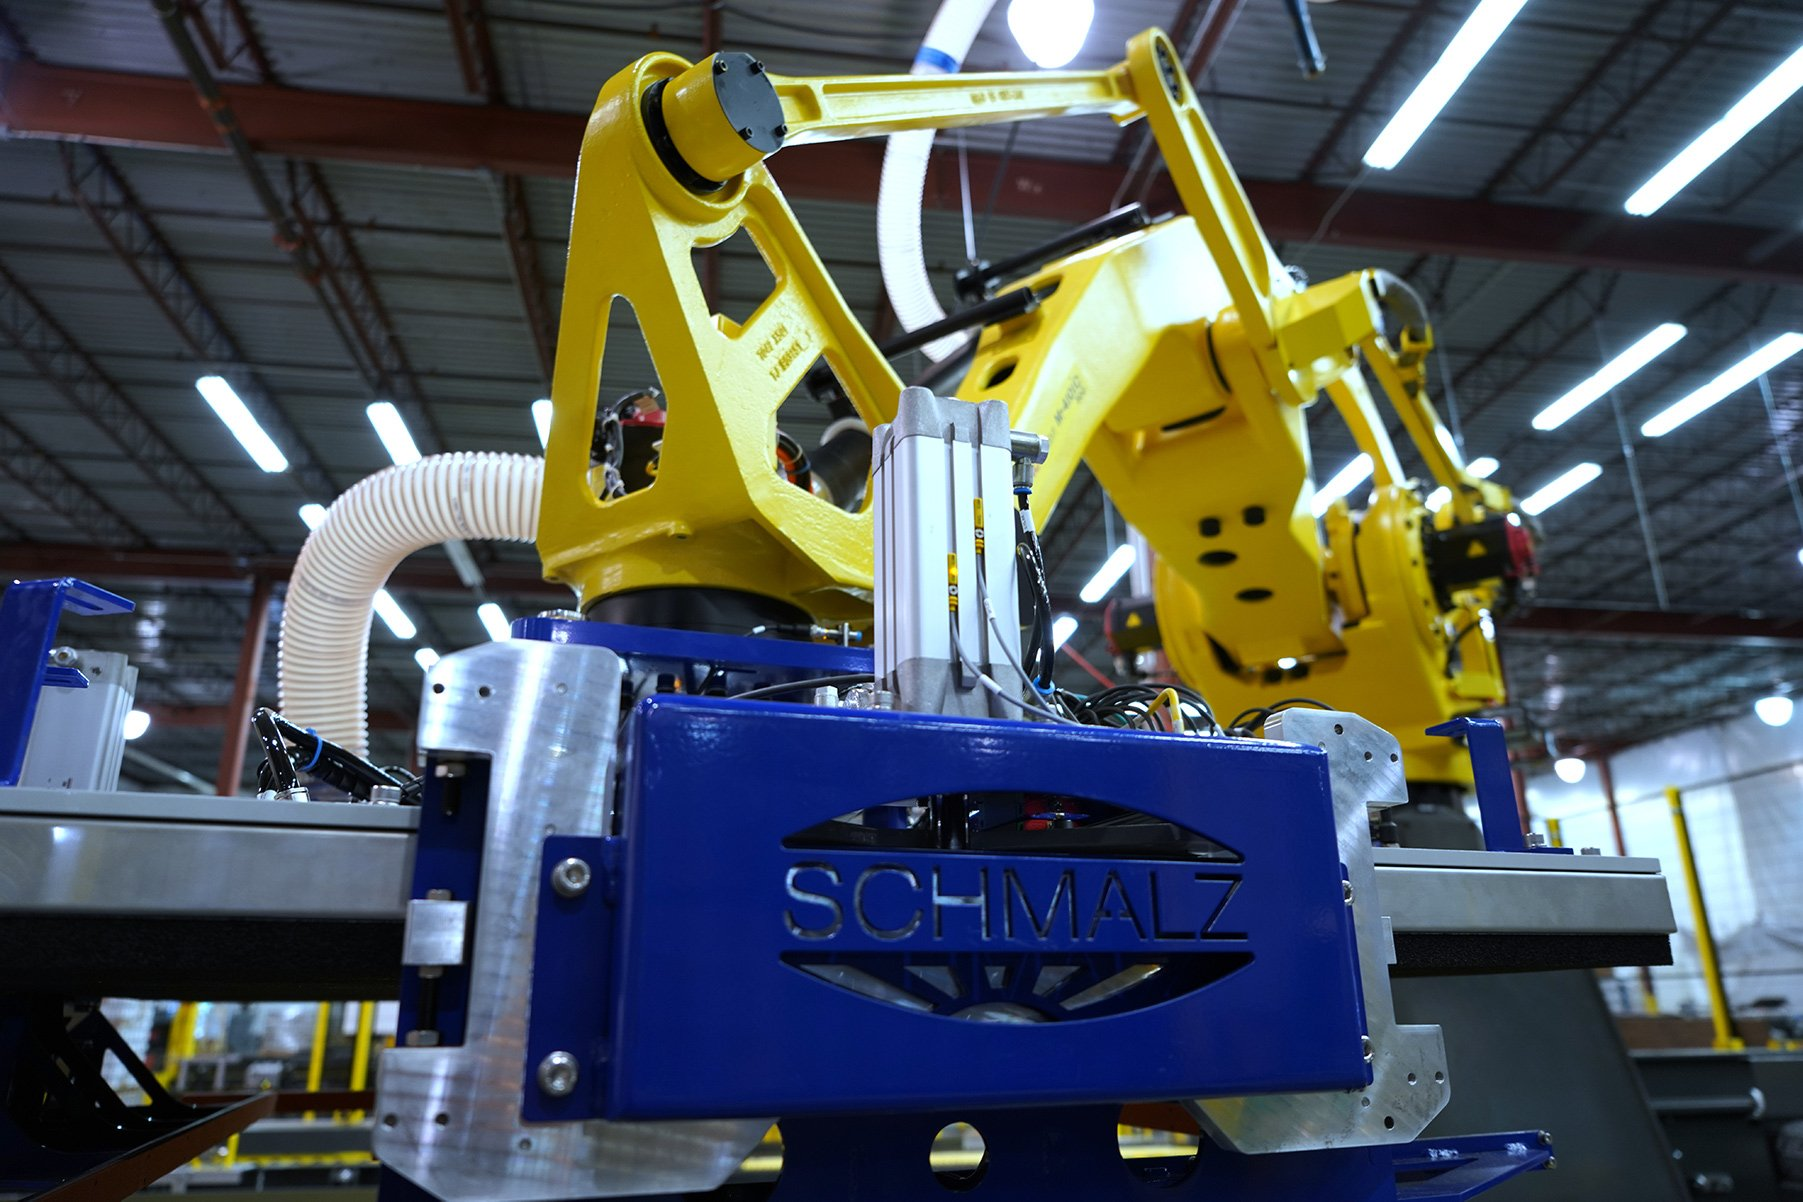 FANUC M-410 Series robot with a Scmalz vacuum custom end tool for a depalletizing system